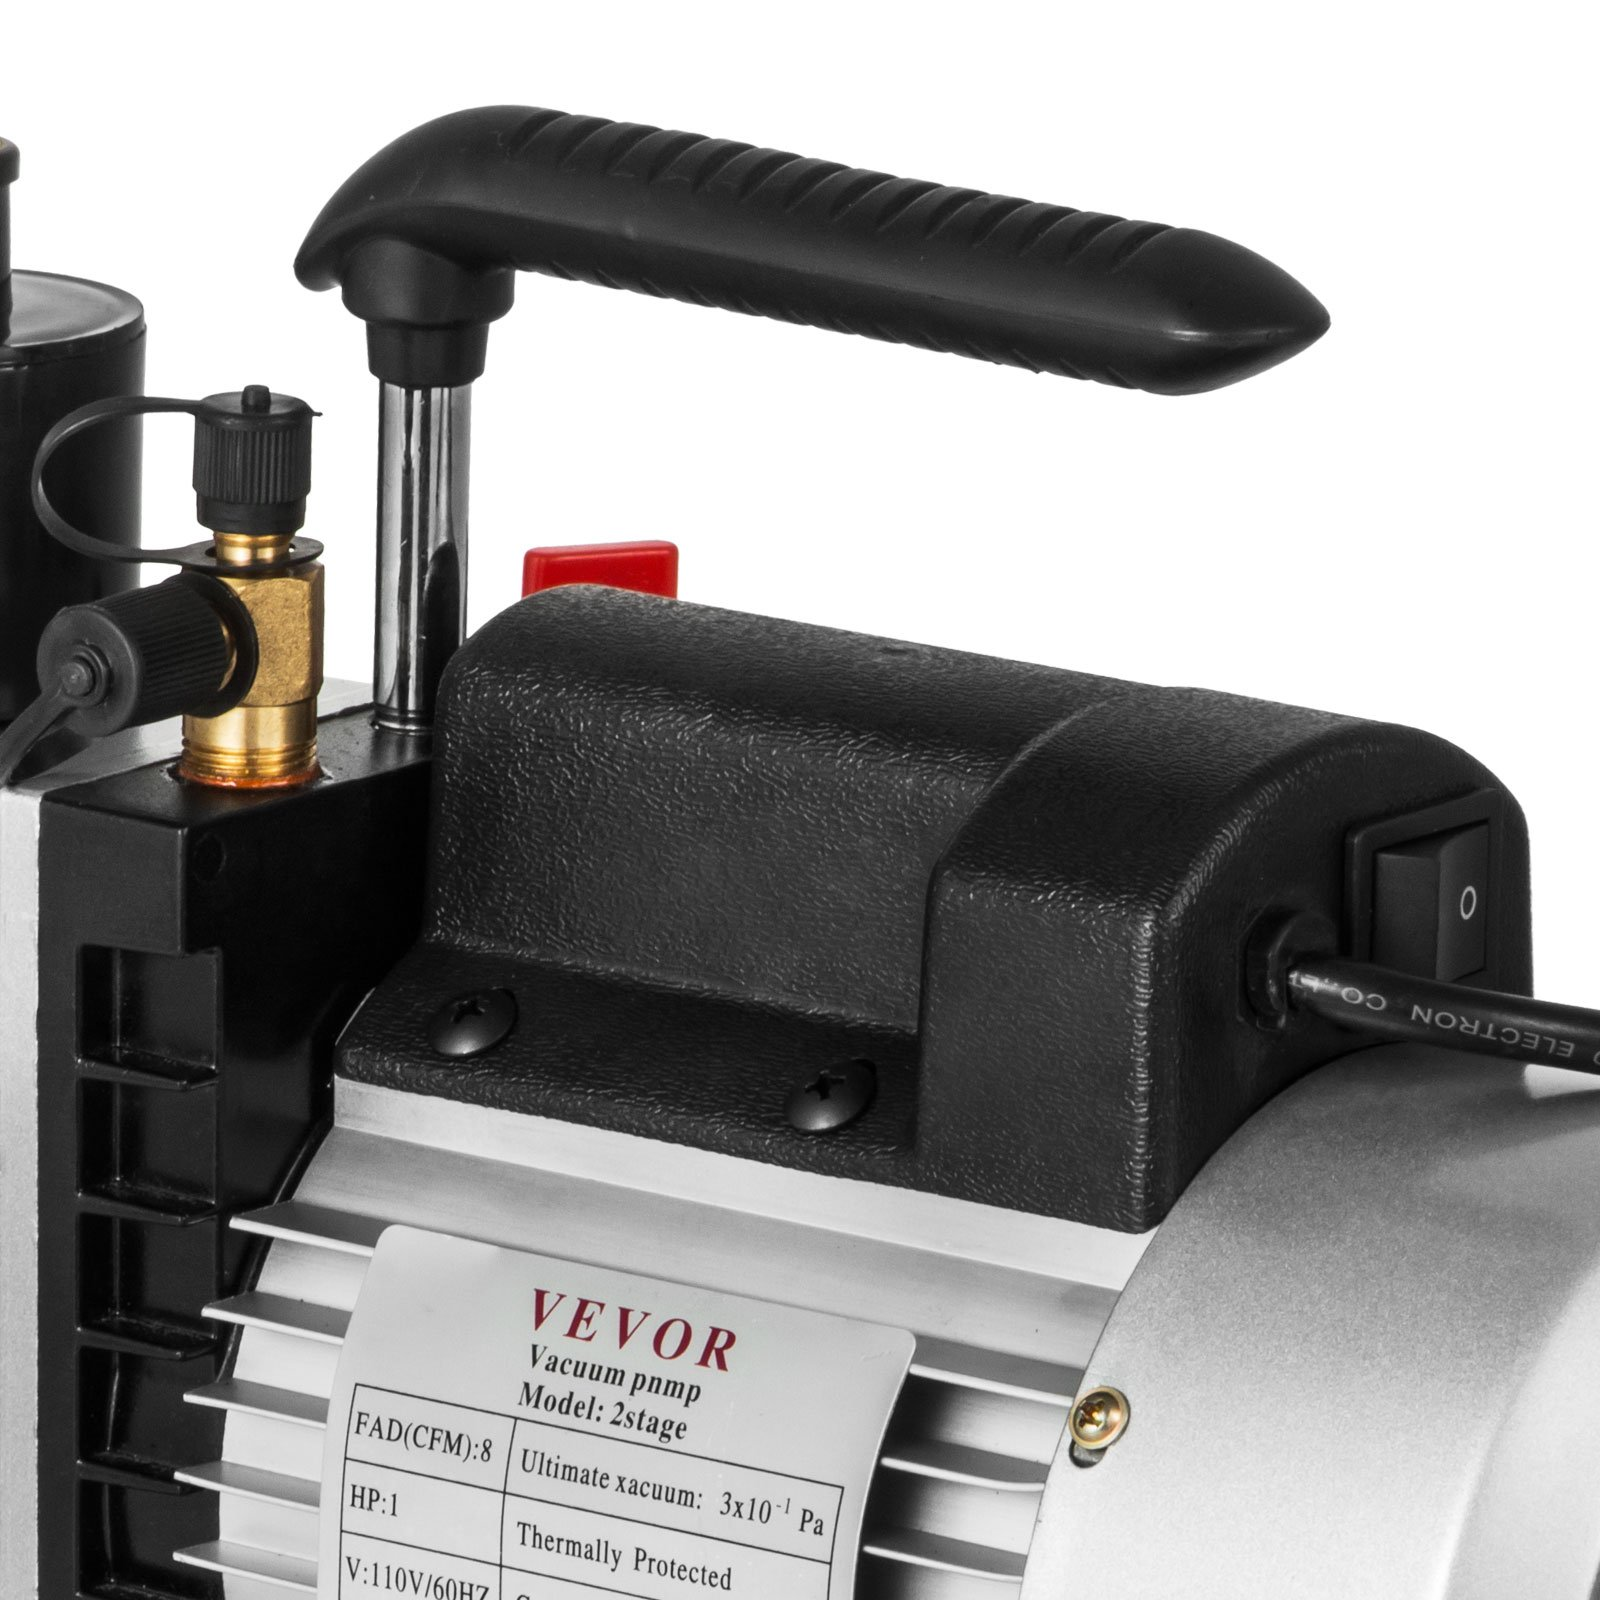 VEVOR Vacuum Pump 8CFM 1HP Two Stage HVAC Rotary Vane Vacuum Pump Wine Degassing Milking Medical Food Processing Air Conditioning Auto AC Refrigerant Vacuum Pump (2-Stage, 8CFM) by VEVOR (Image #10)